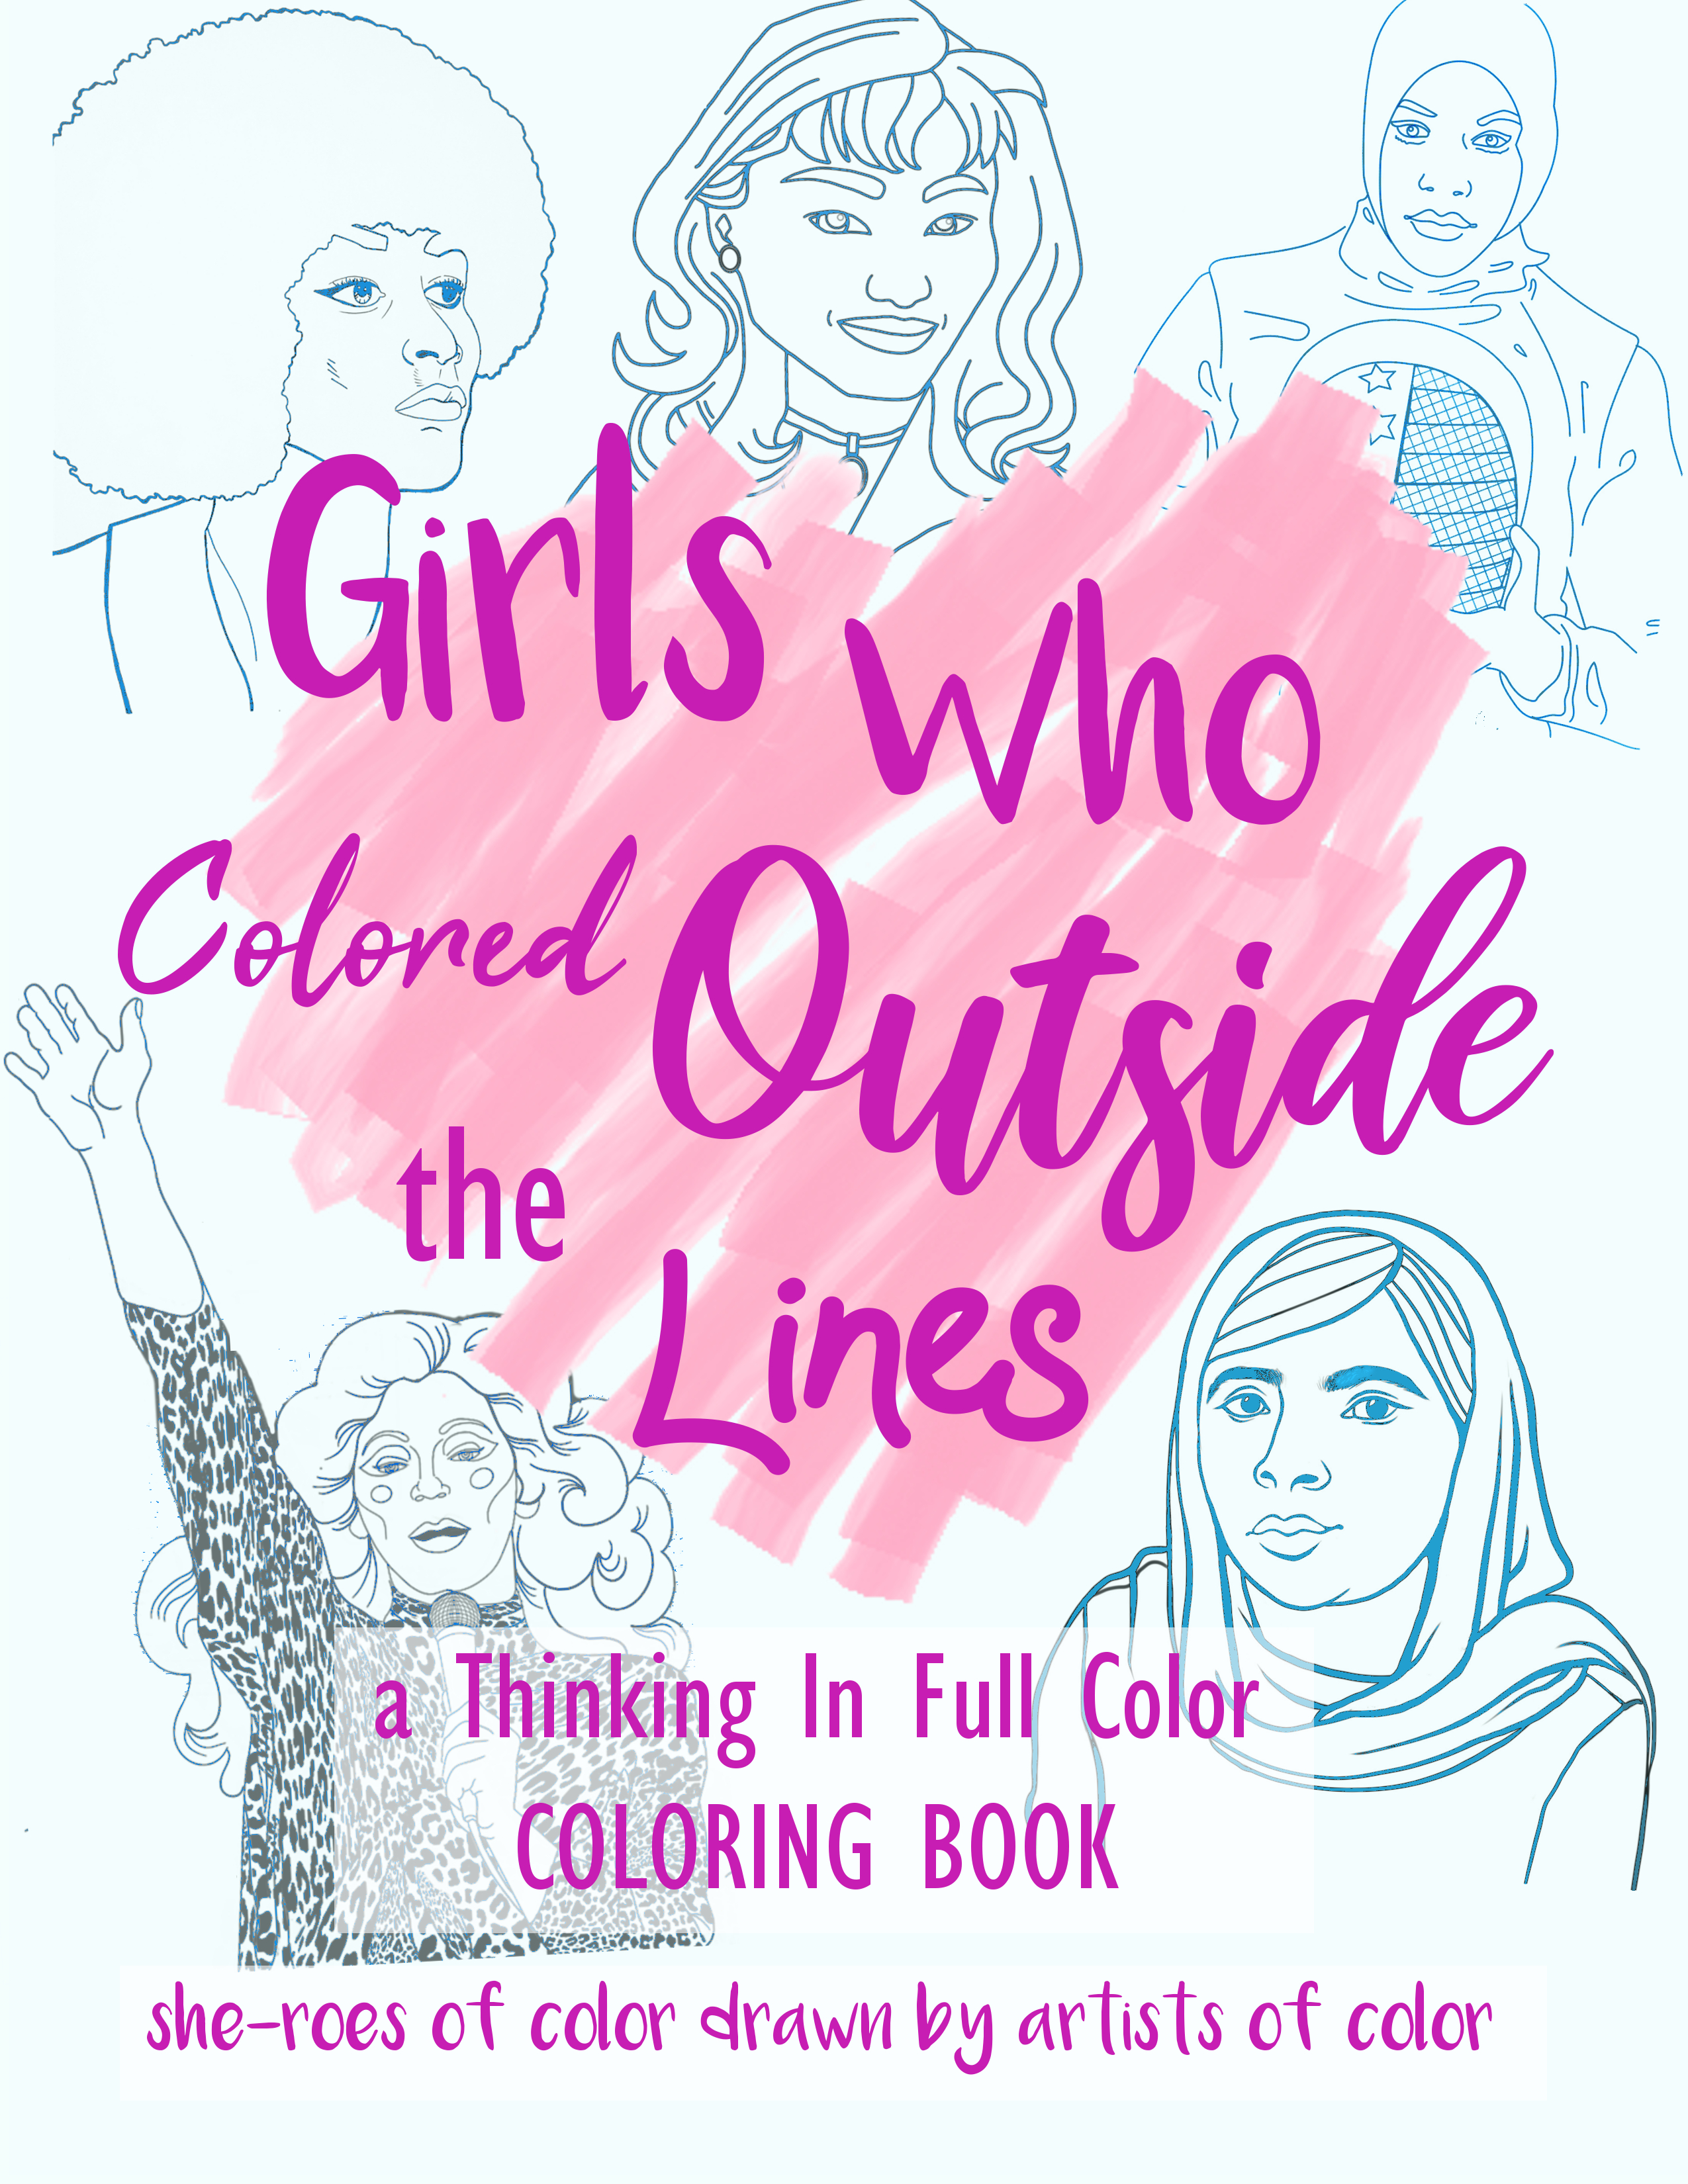 Grab our coloring book for the holidays home